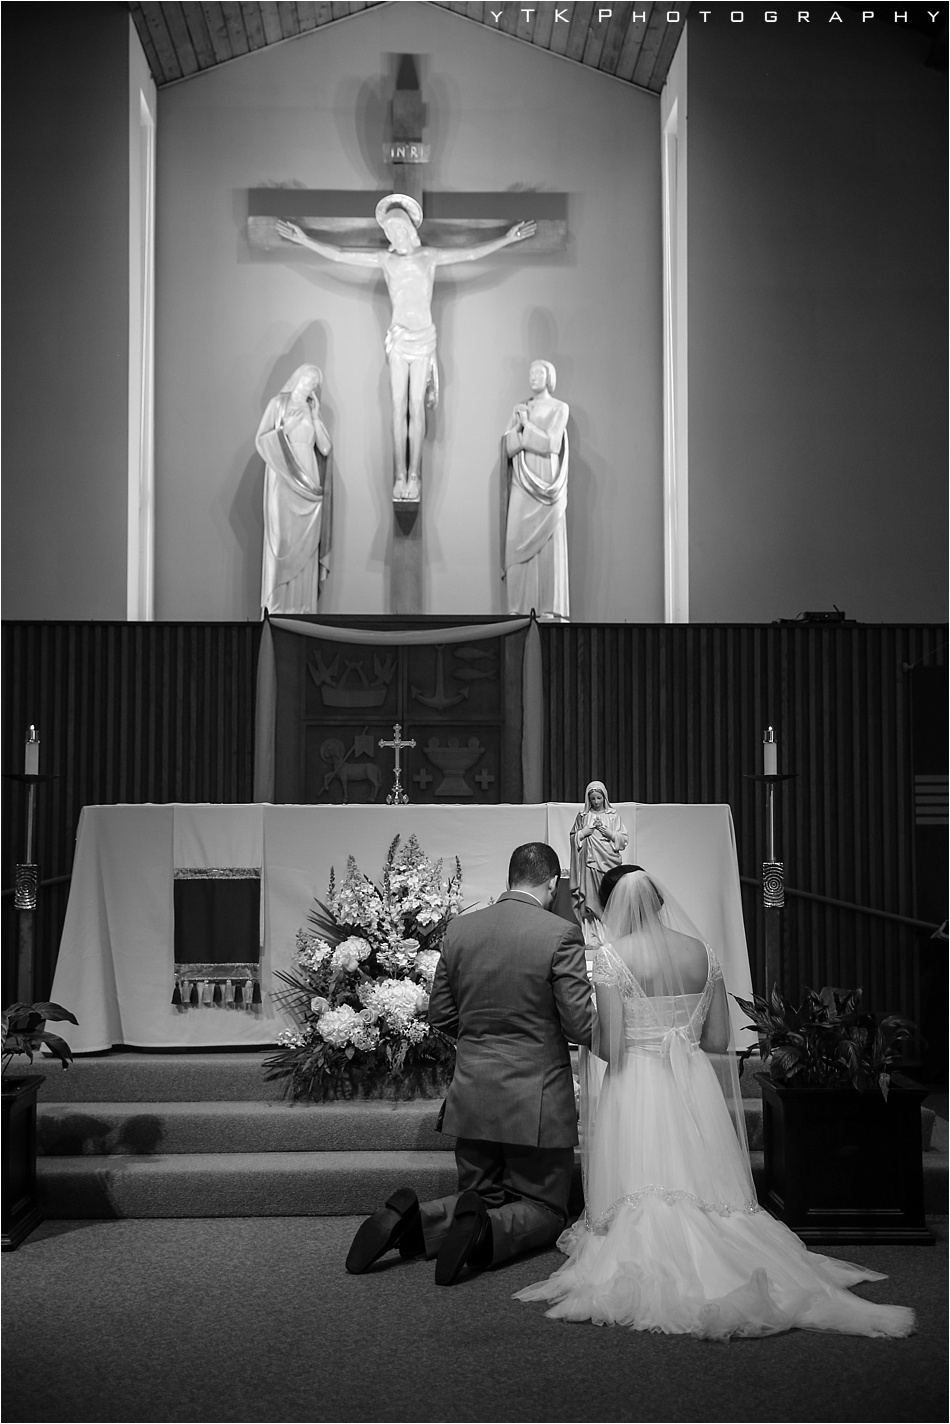 Key_Hall_Proctors_Wedding_026